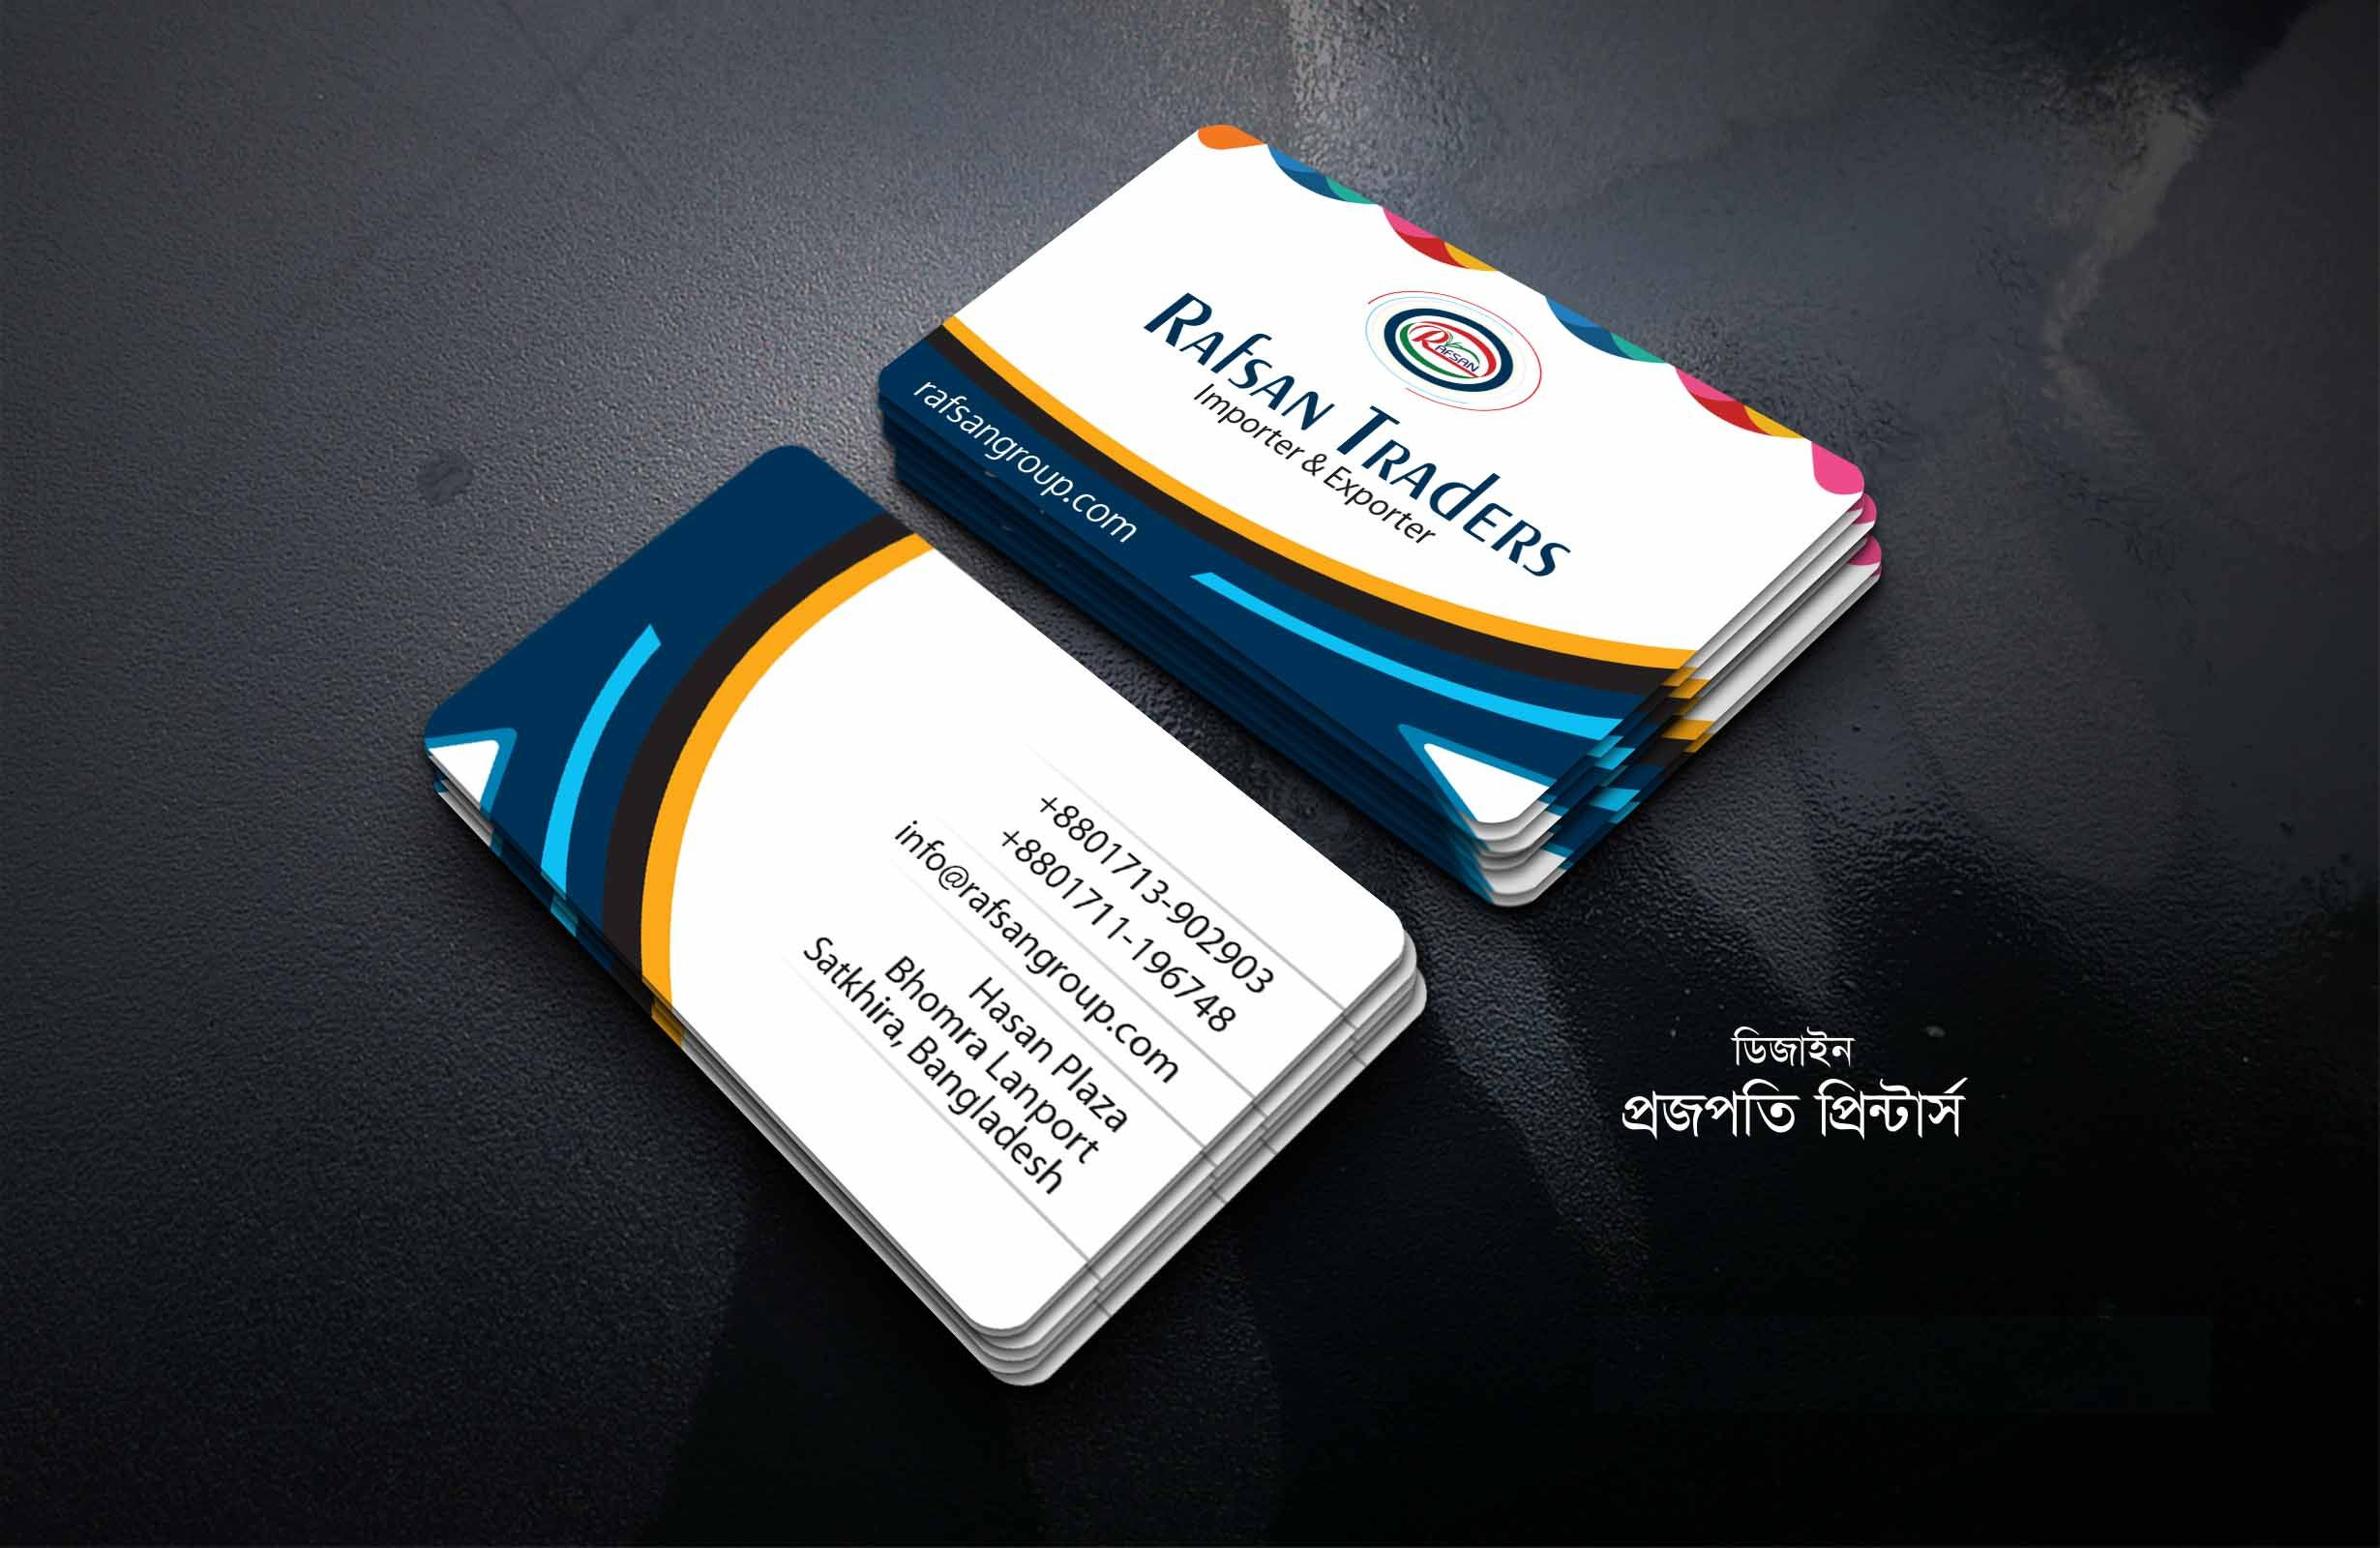 Business Card Design ভ জ ট ক র ড ড জ ইন ব ল Graphic Design Business Card Create Business Cards Business Card Tutorial